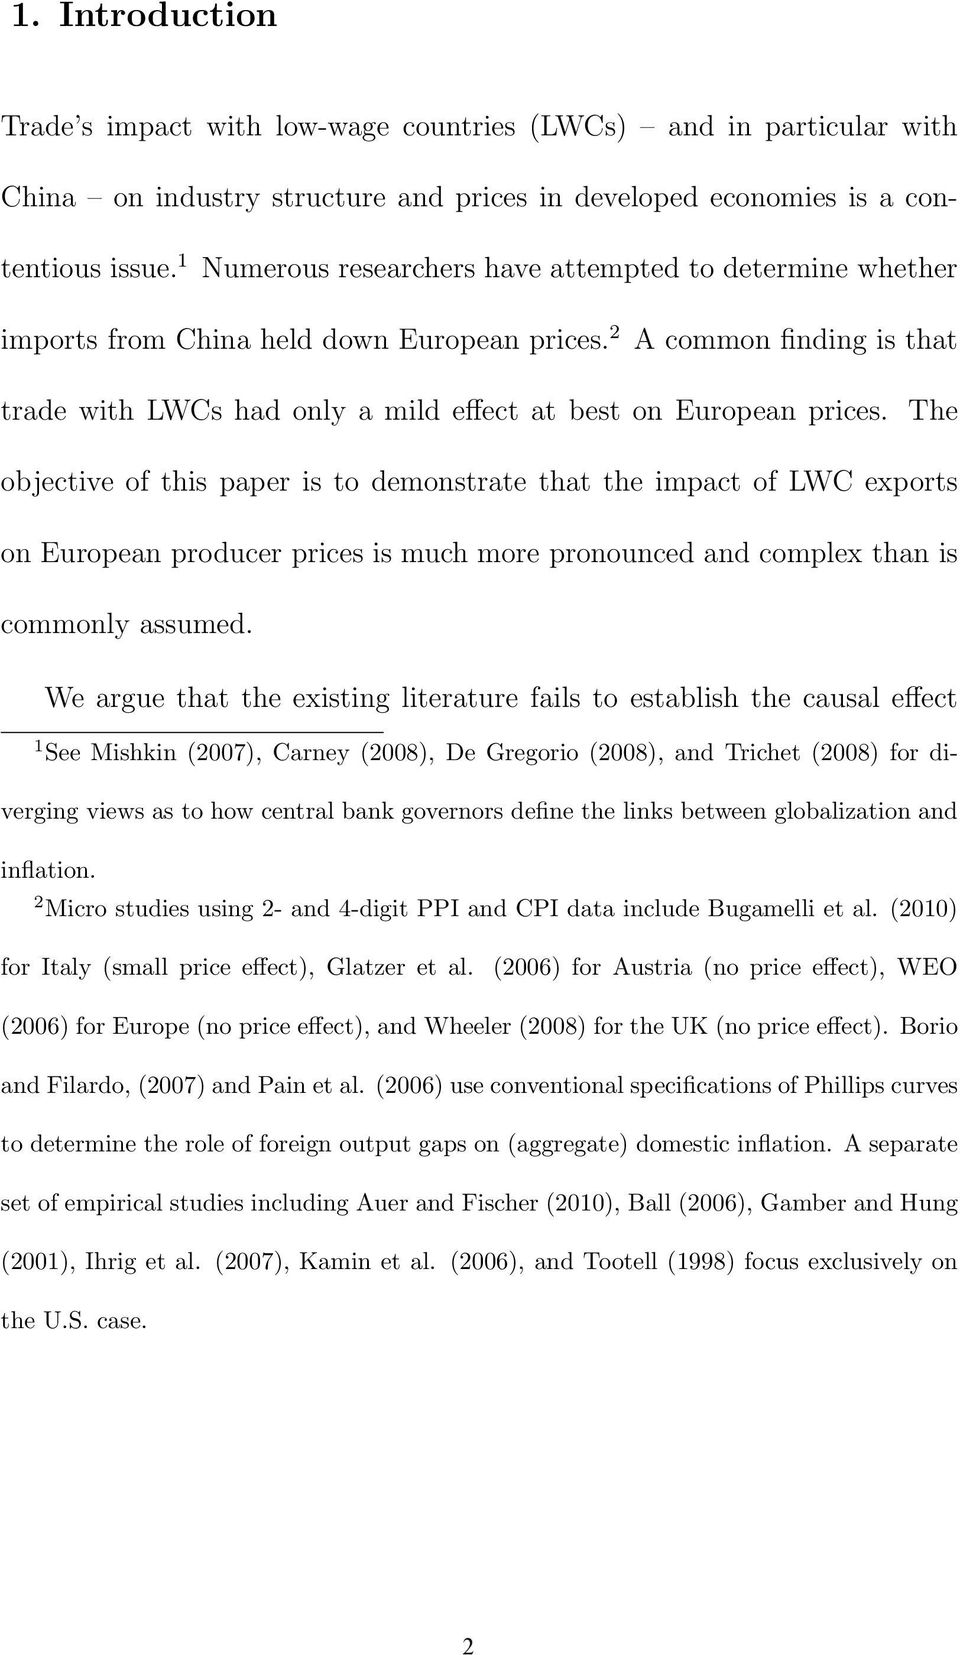 The objective of this paper is to demonstrate that the impact of LWC exports on European producer prices is much more pronounced and complex than is commonly assumed.